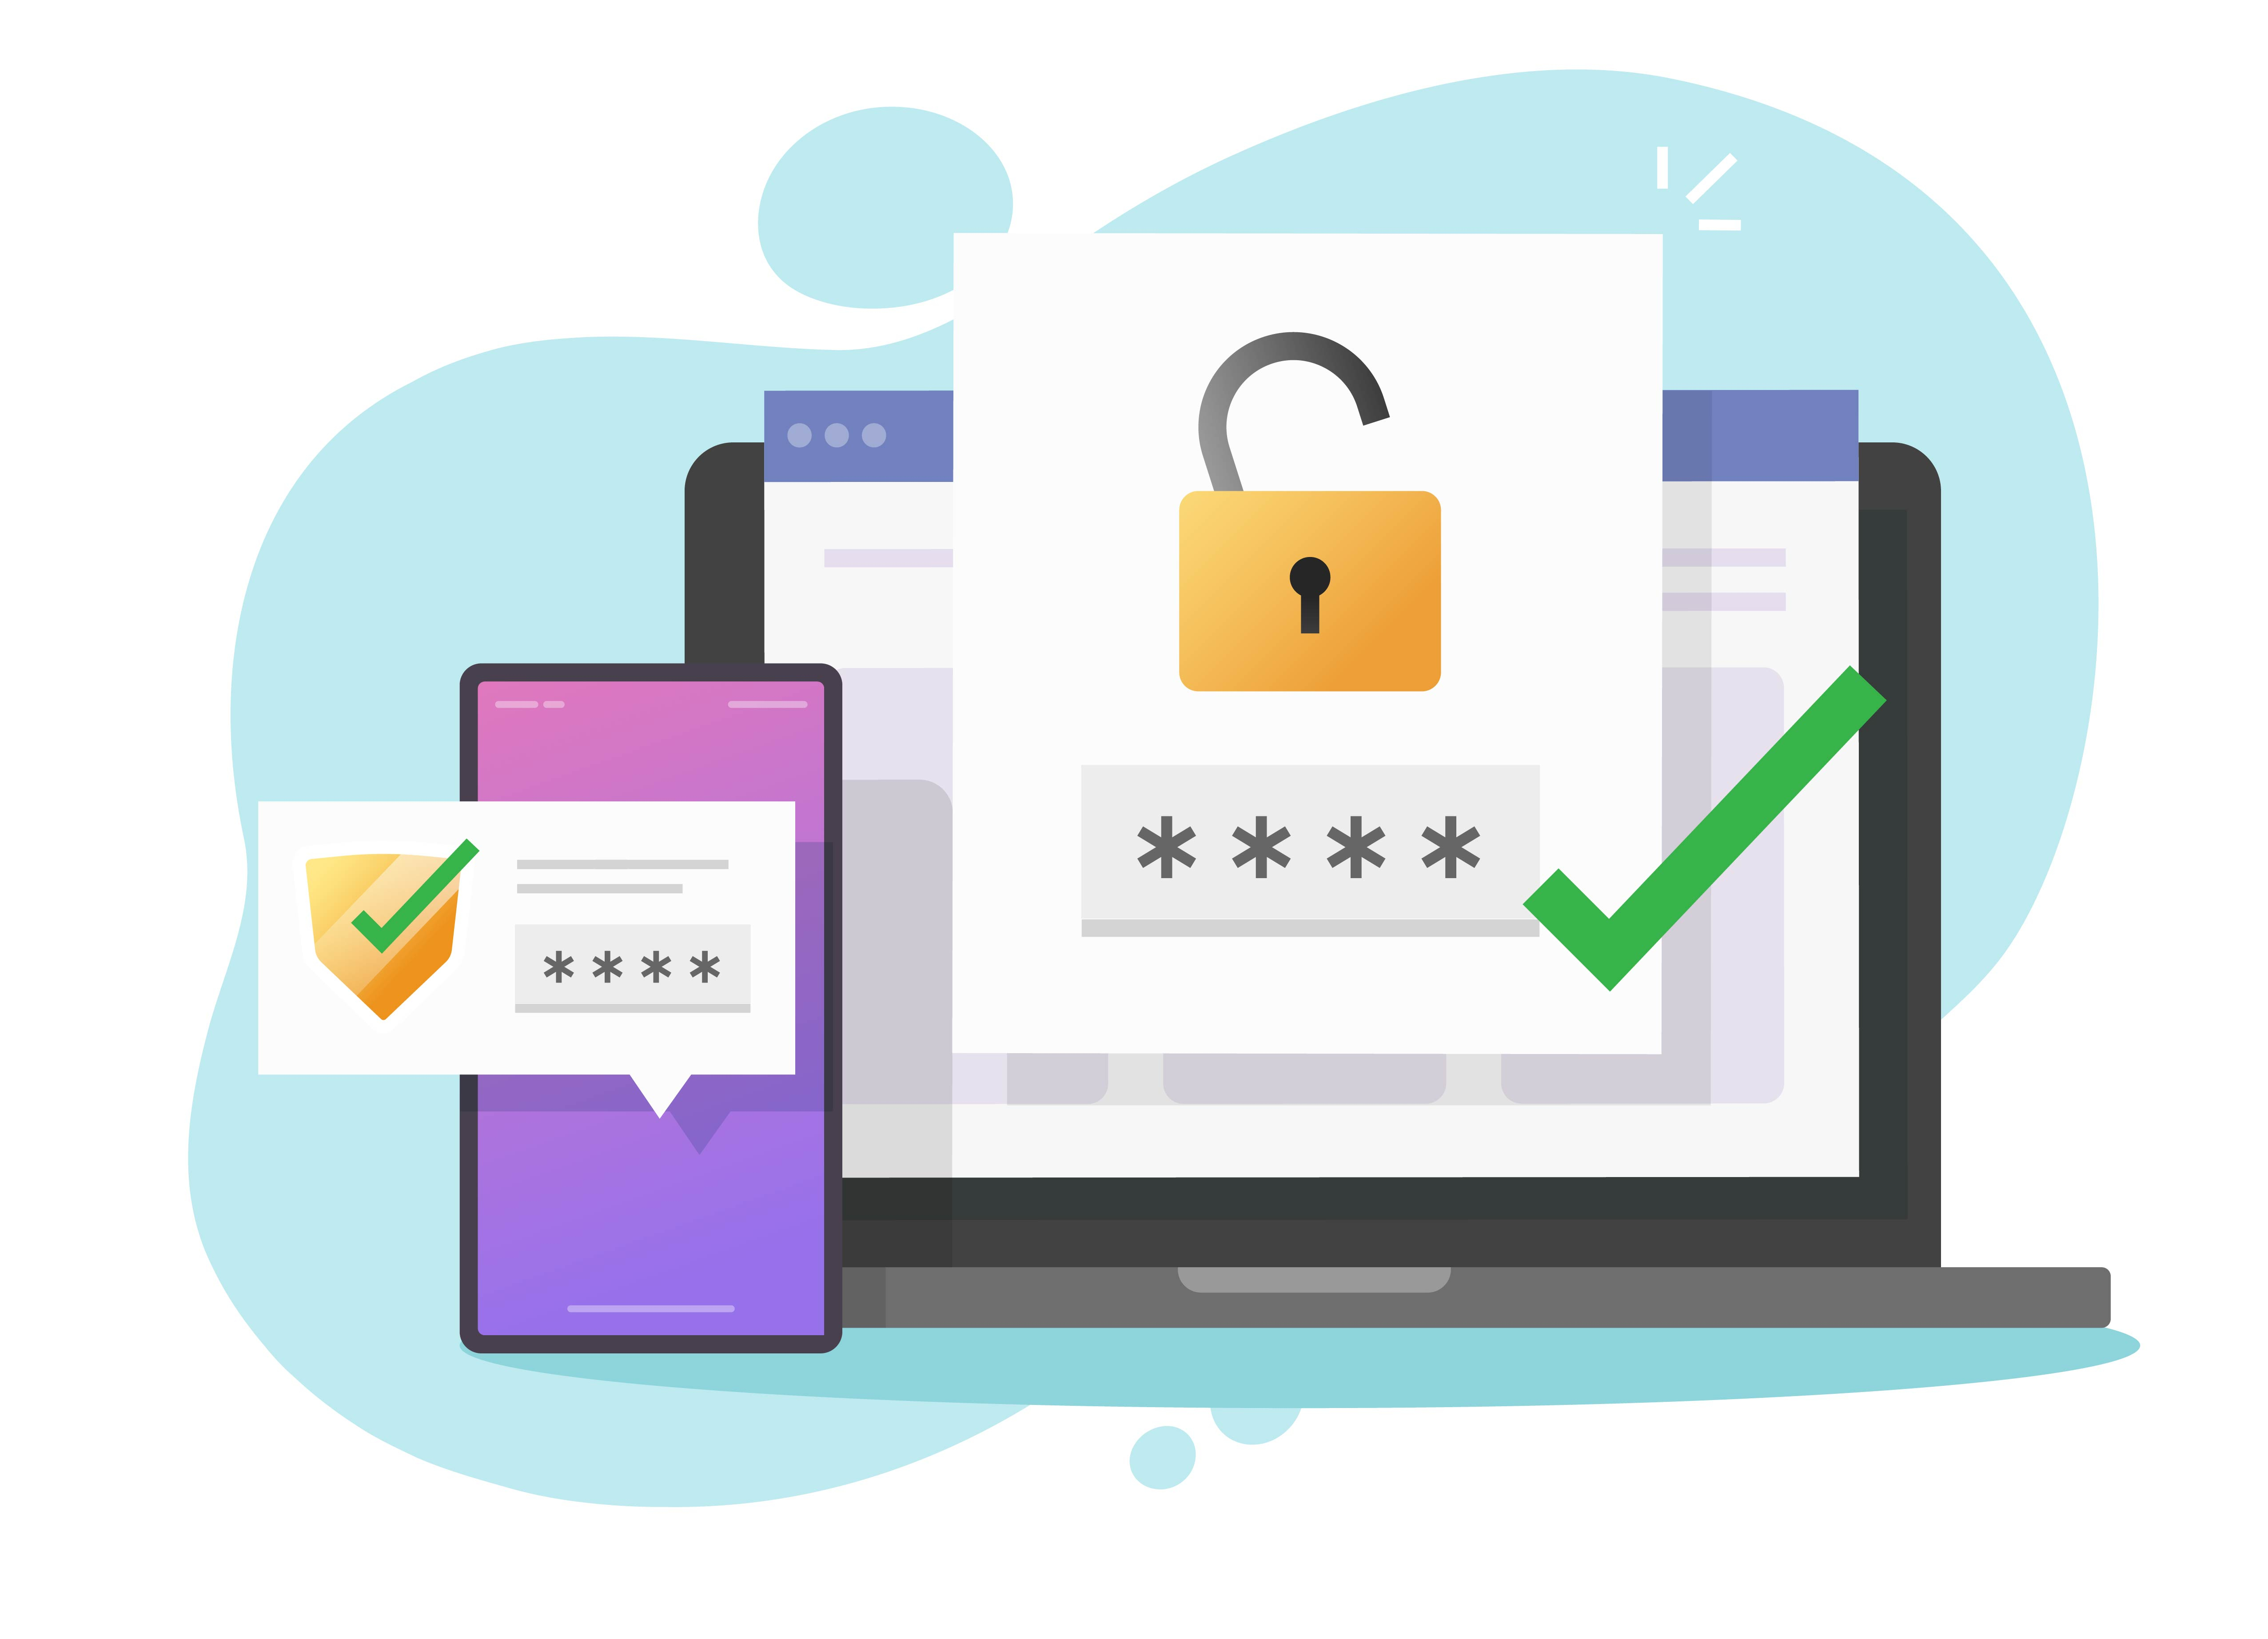 New! Sensitive Information Protection feature